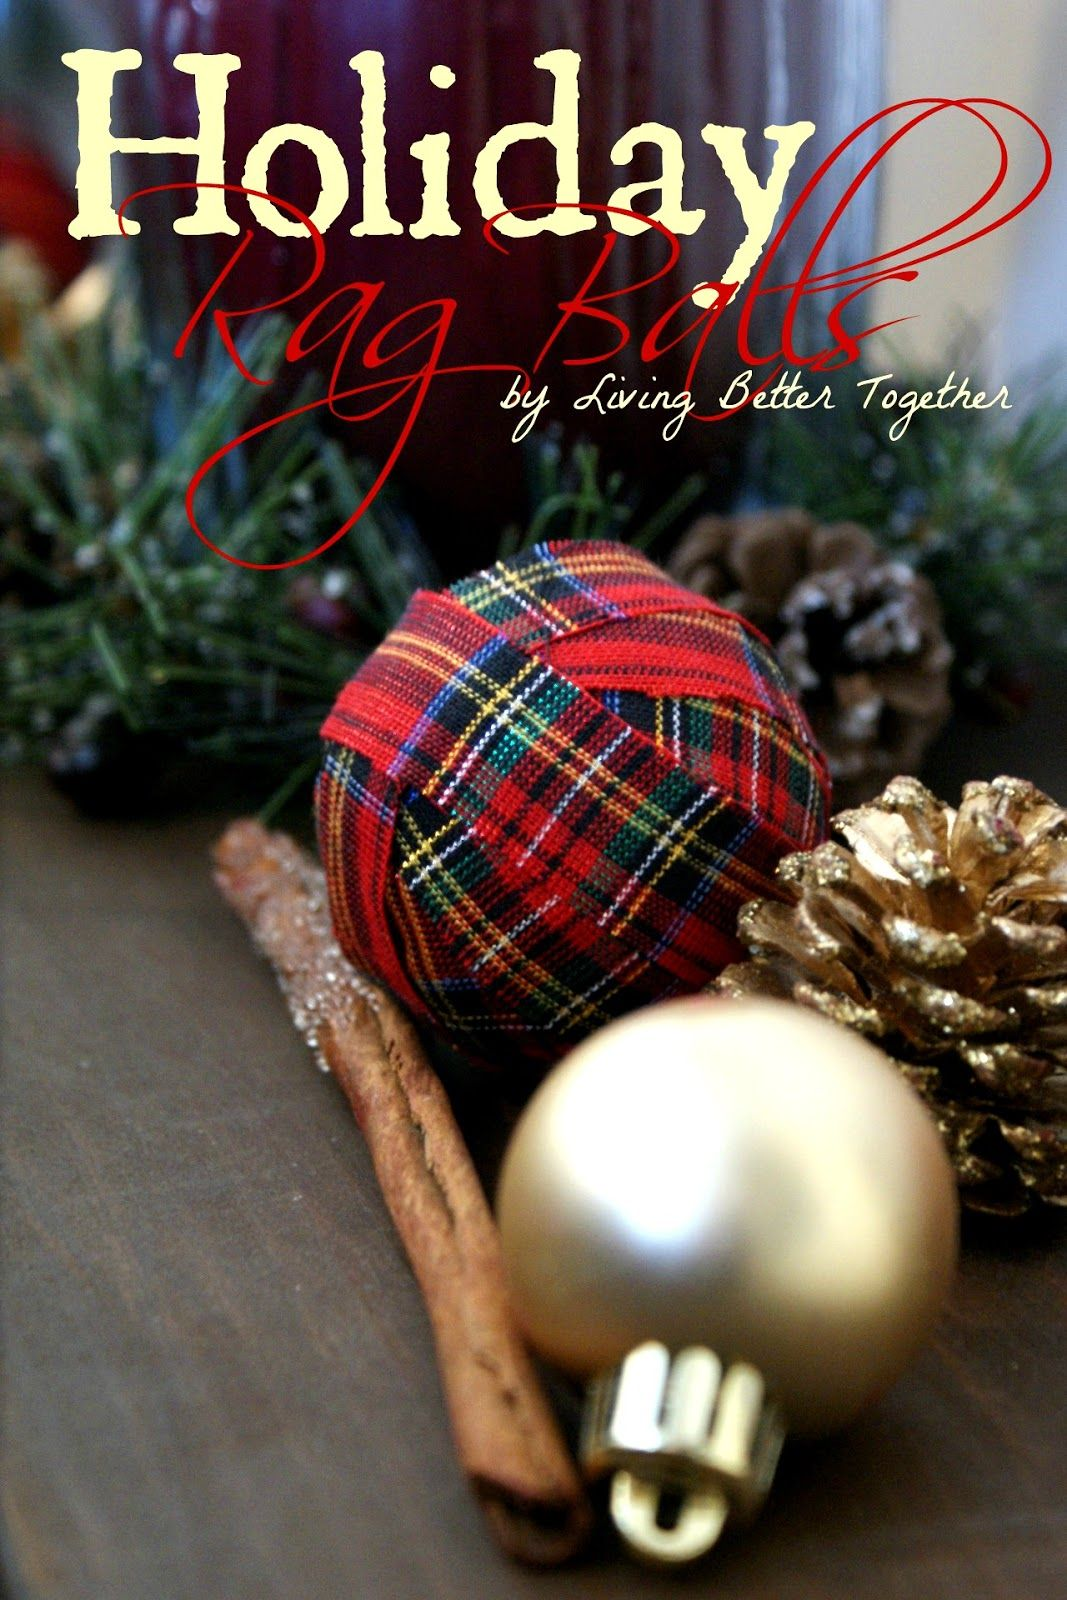 Holiday rag balls a simple diy use them as vase filler or turn holiday rag balls a simple diy use them as vase filler or turn them floridaeventfo Images